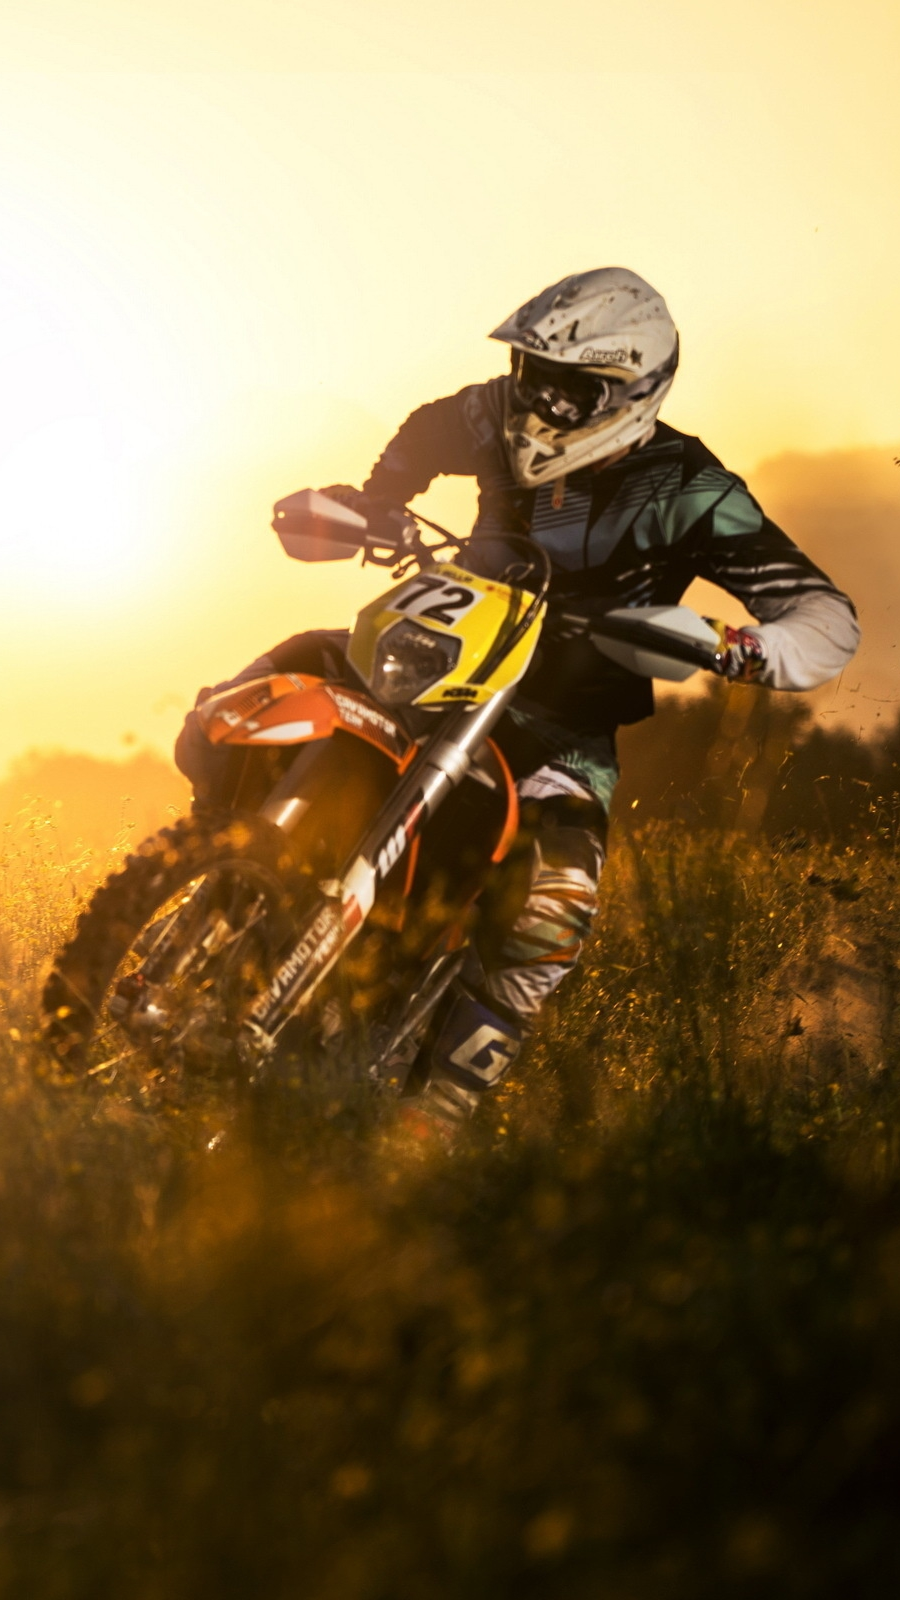 Dirt Bike Wallpaper Girls Dirtbike In Mud Iphone Wallpaper Iphone Wallpapers